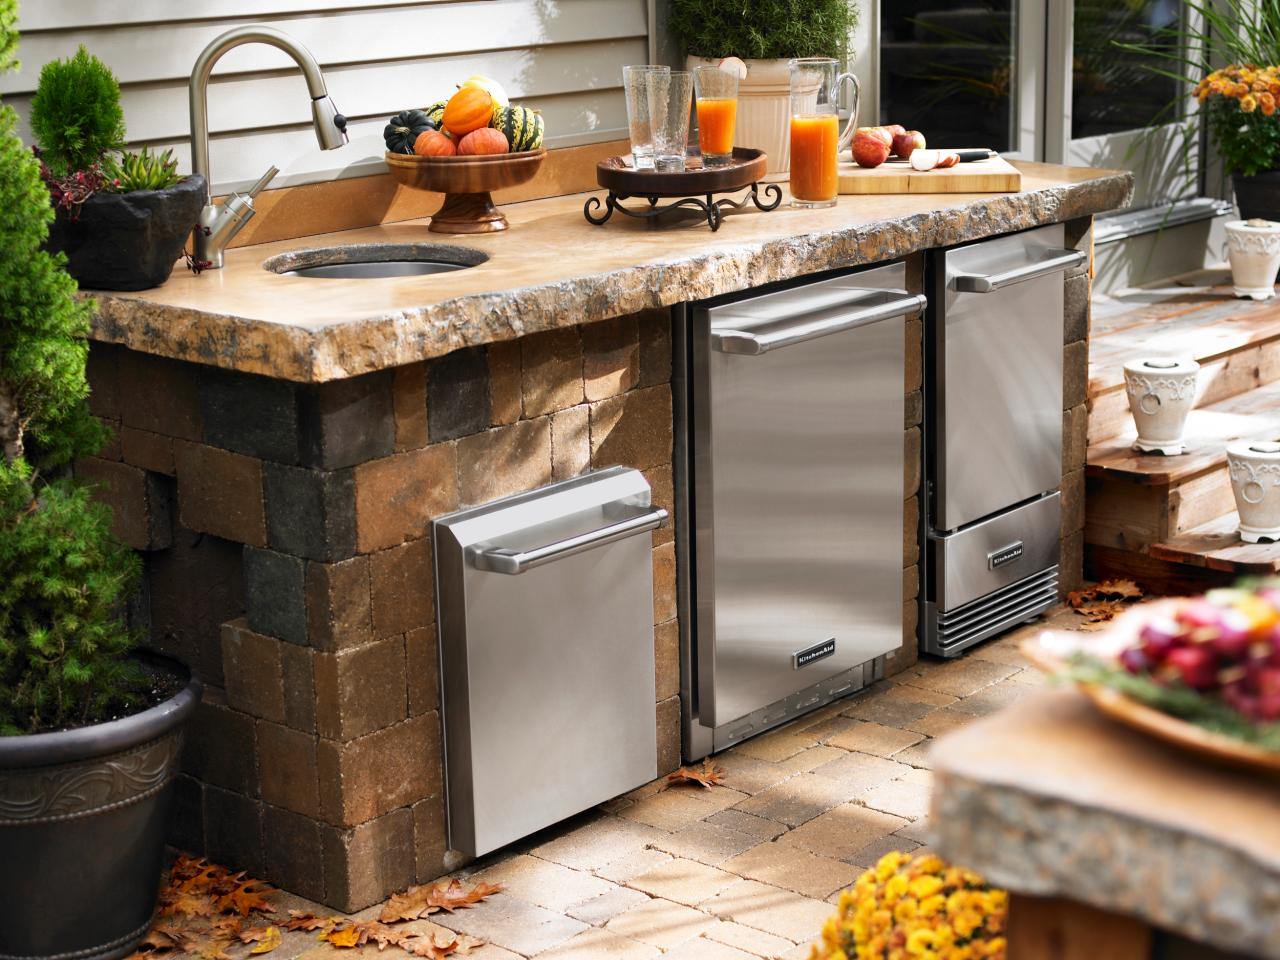 Simple Outdoor Kitchen Design with Stone Cabinet and Countertop Combined with Stainless Steel Storage